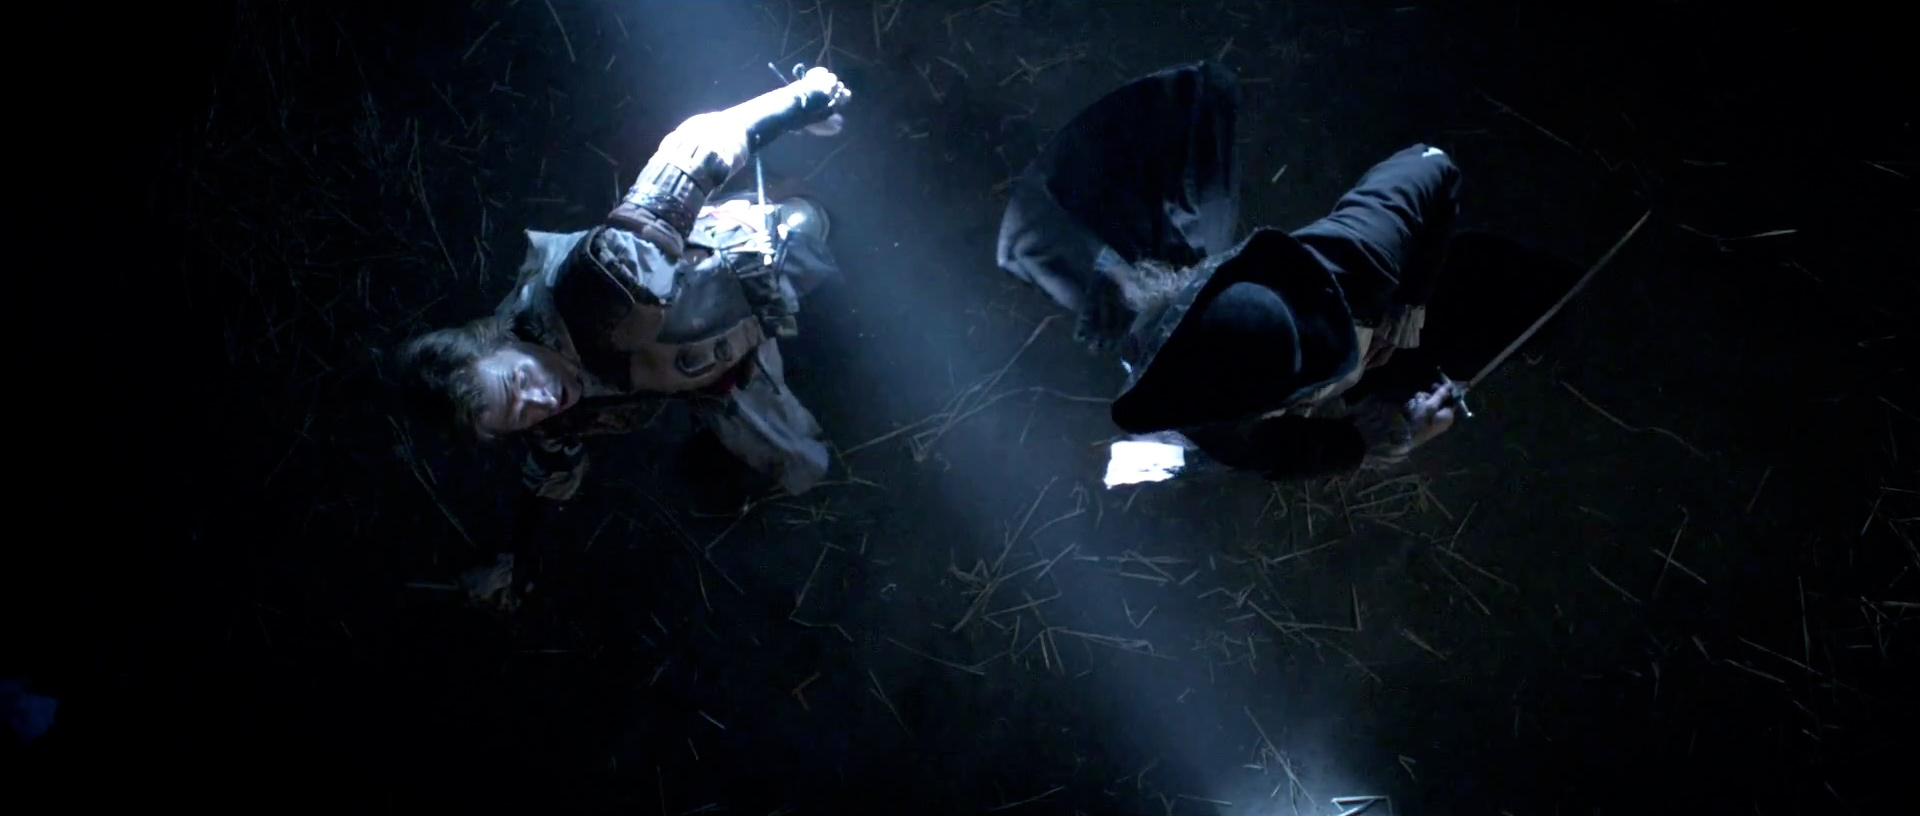 awesome-assassins-creed-short-film-checkmate-13.jpg